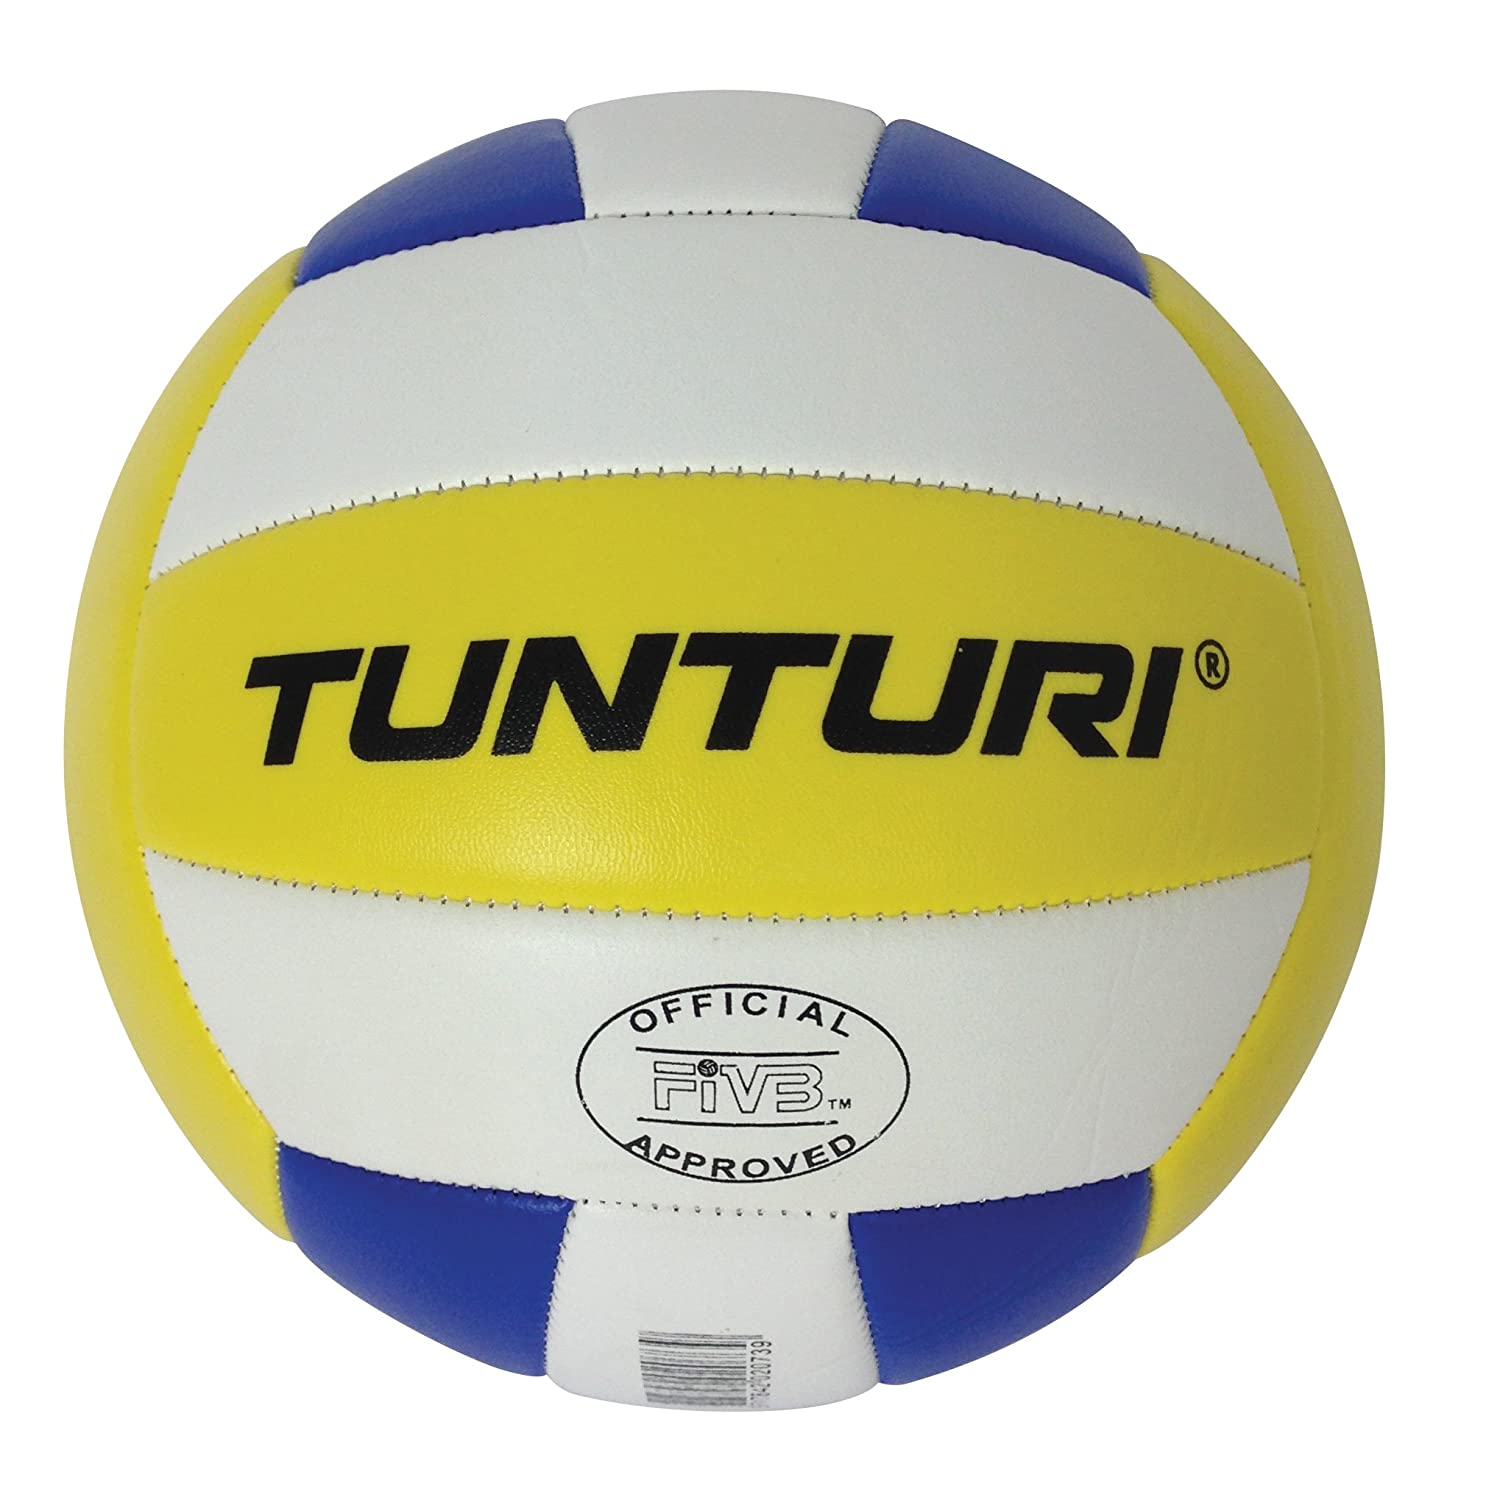 Tunturi 14TUSTE007 Ballons de Beach-Volley Mixte Adulte, Multi Couleur, 1